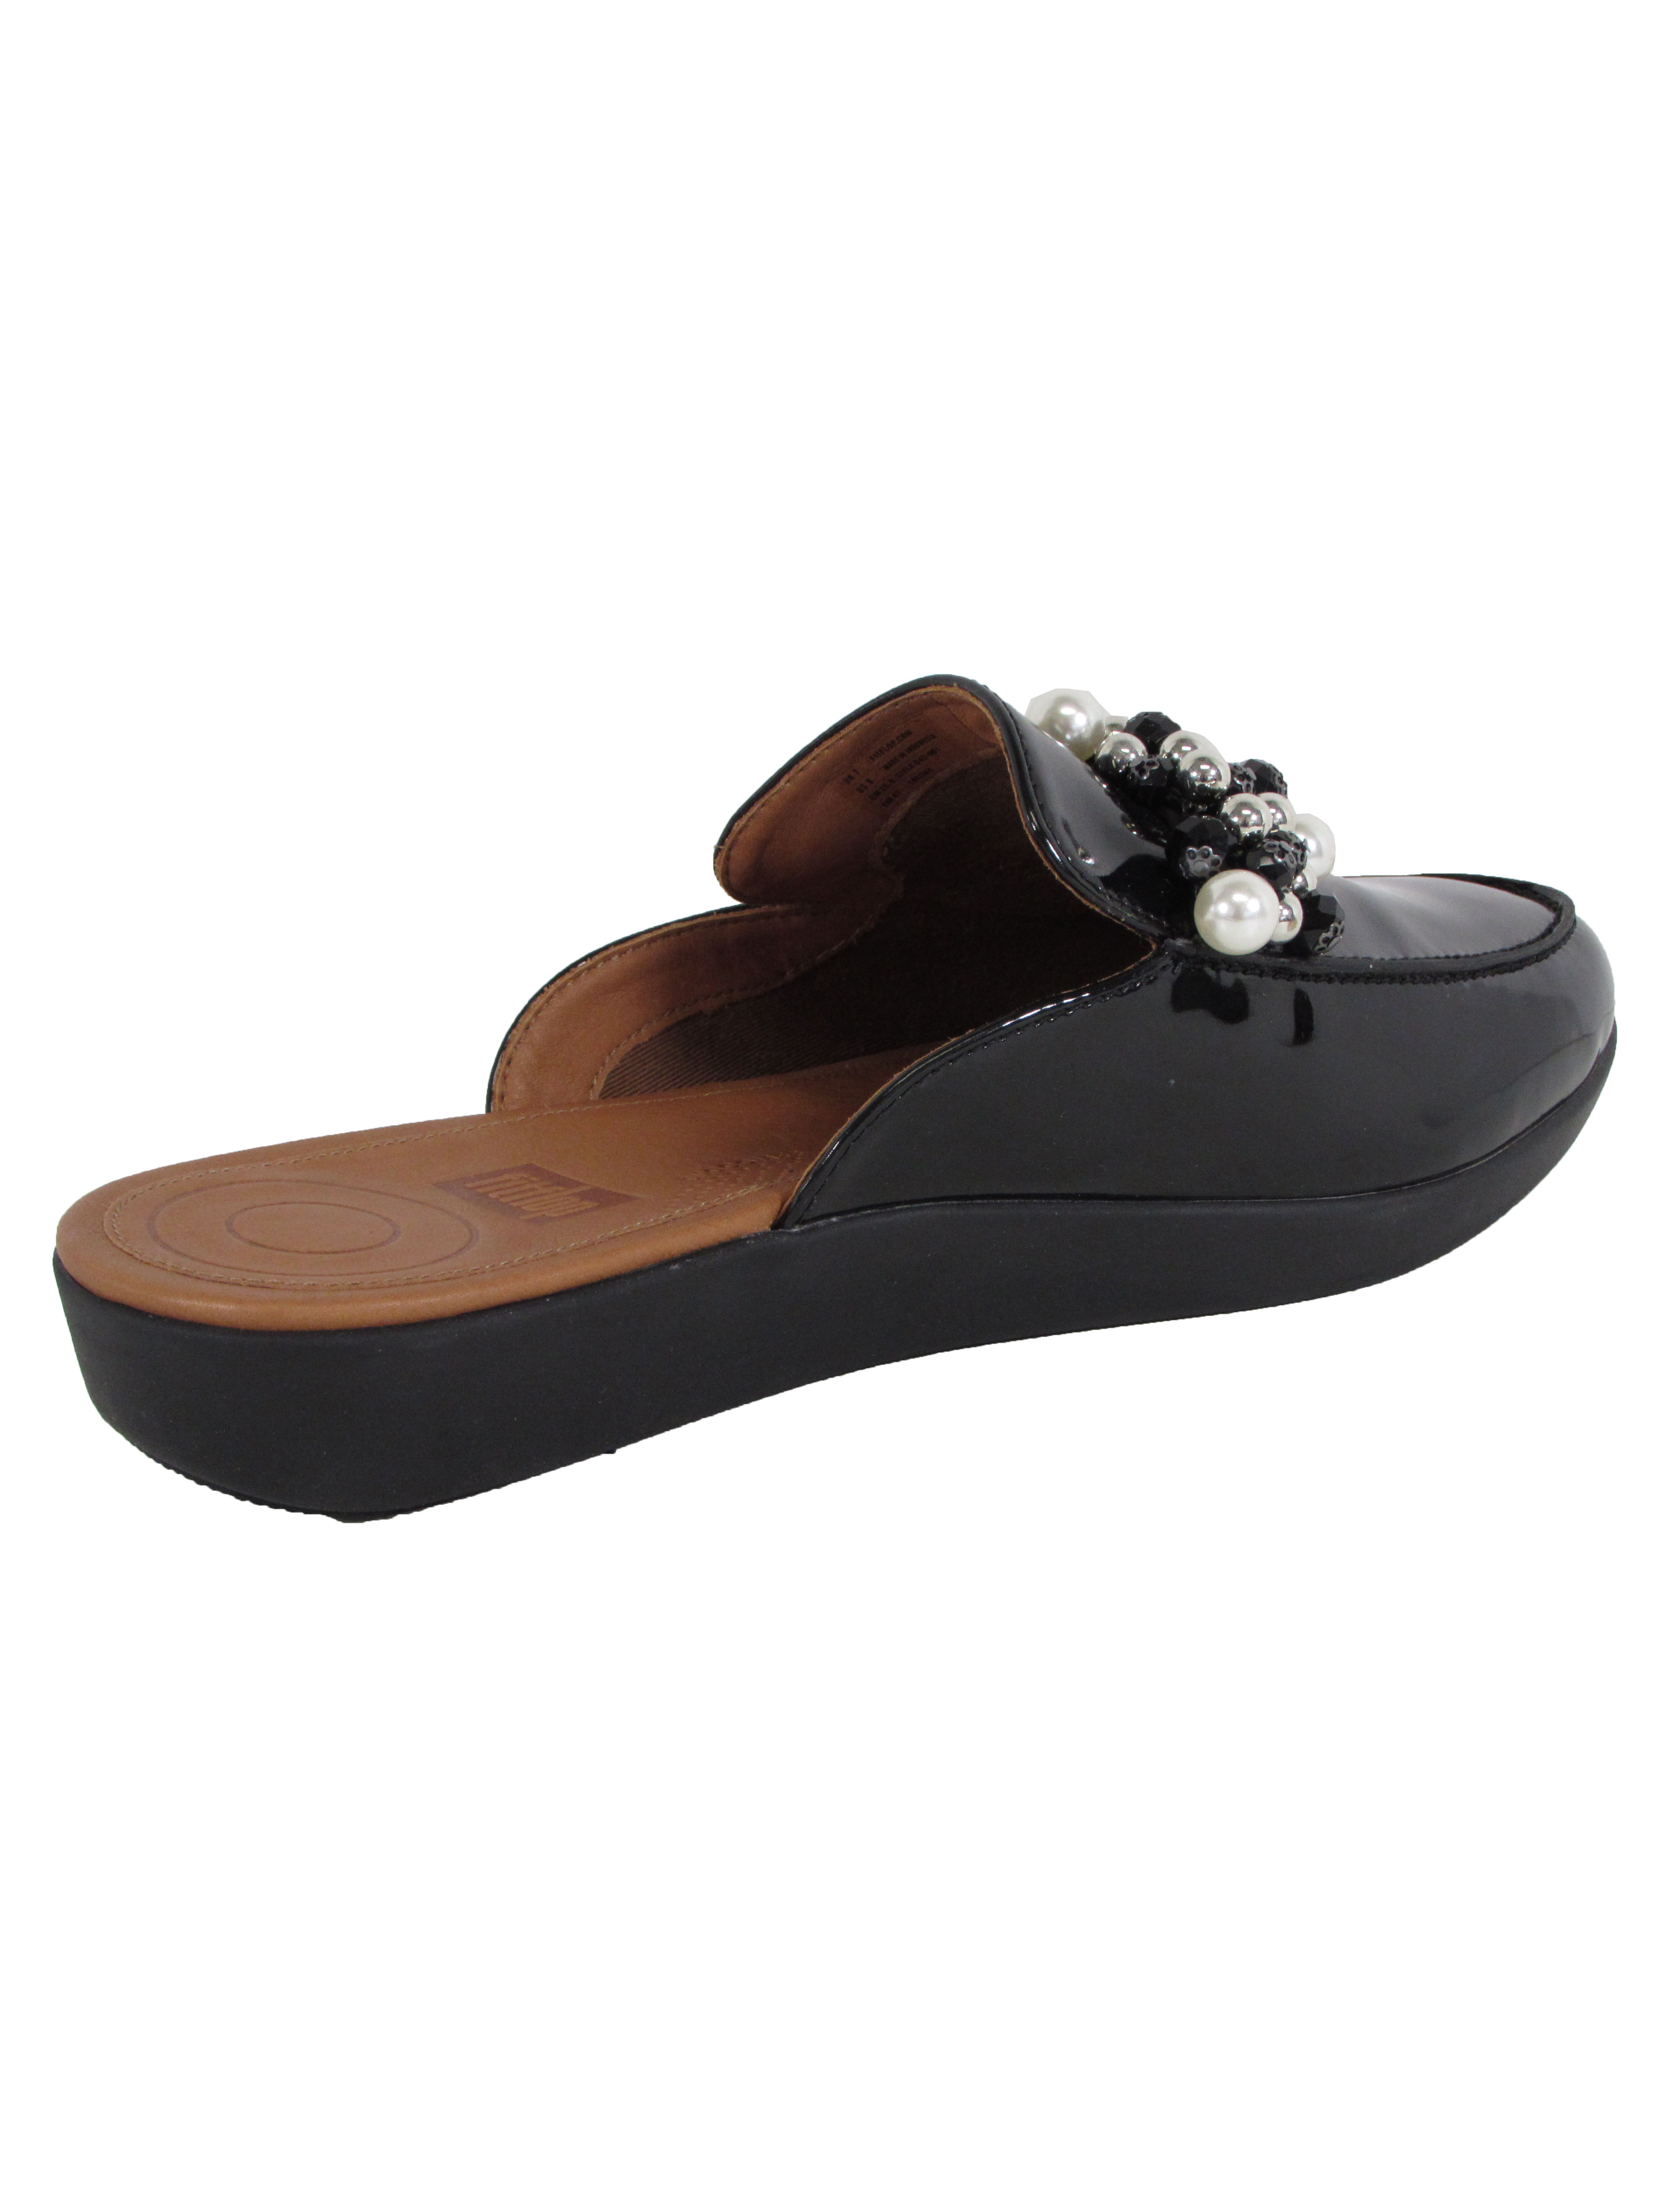 Fitflop-Womens-Serene-Deco-Beaded-Mule-Shoes thumbnail 4